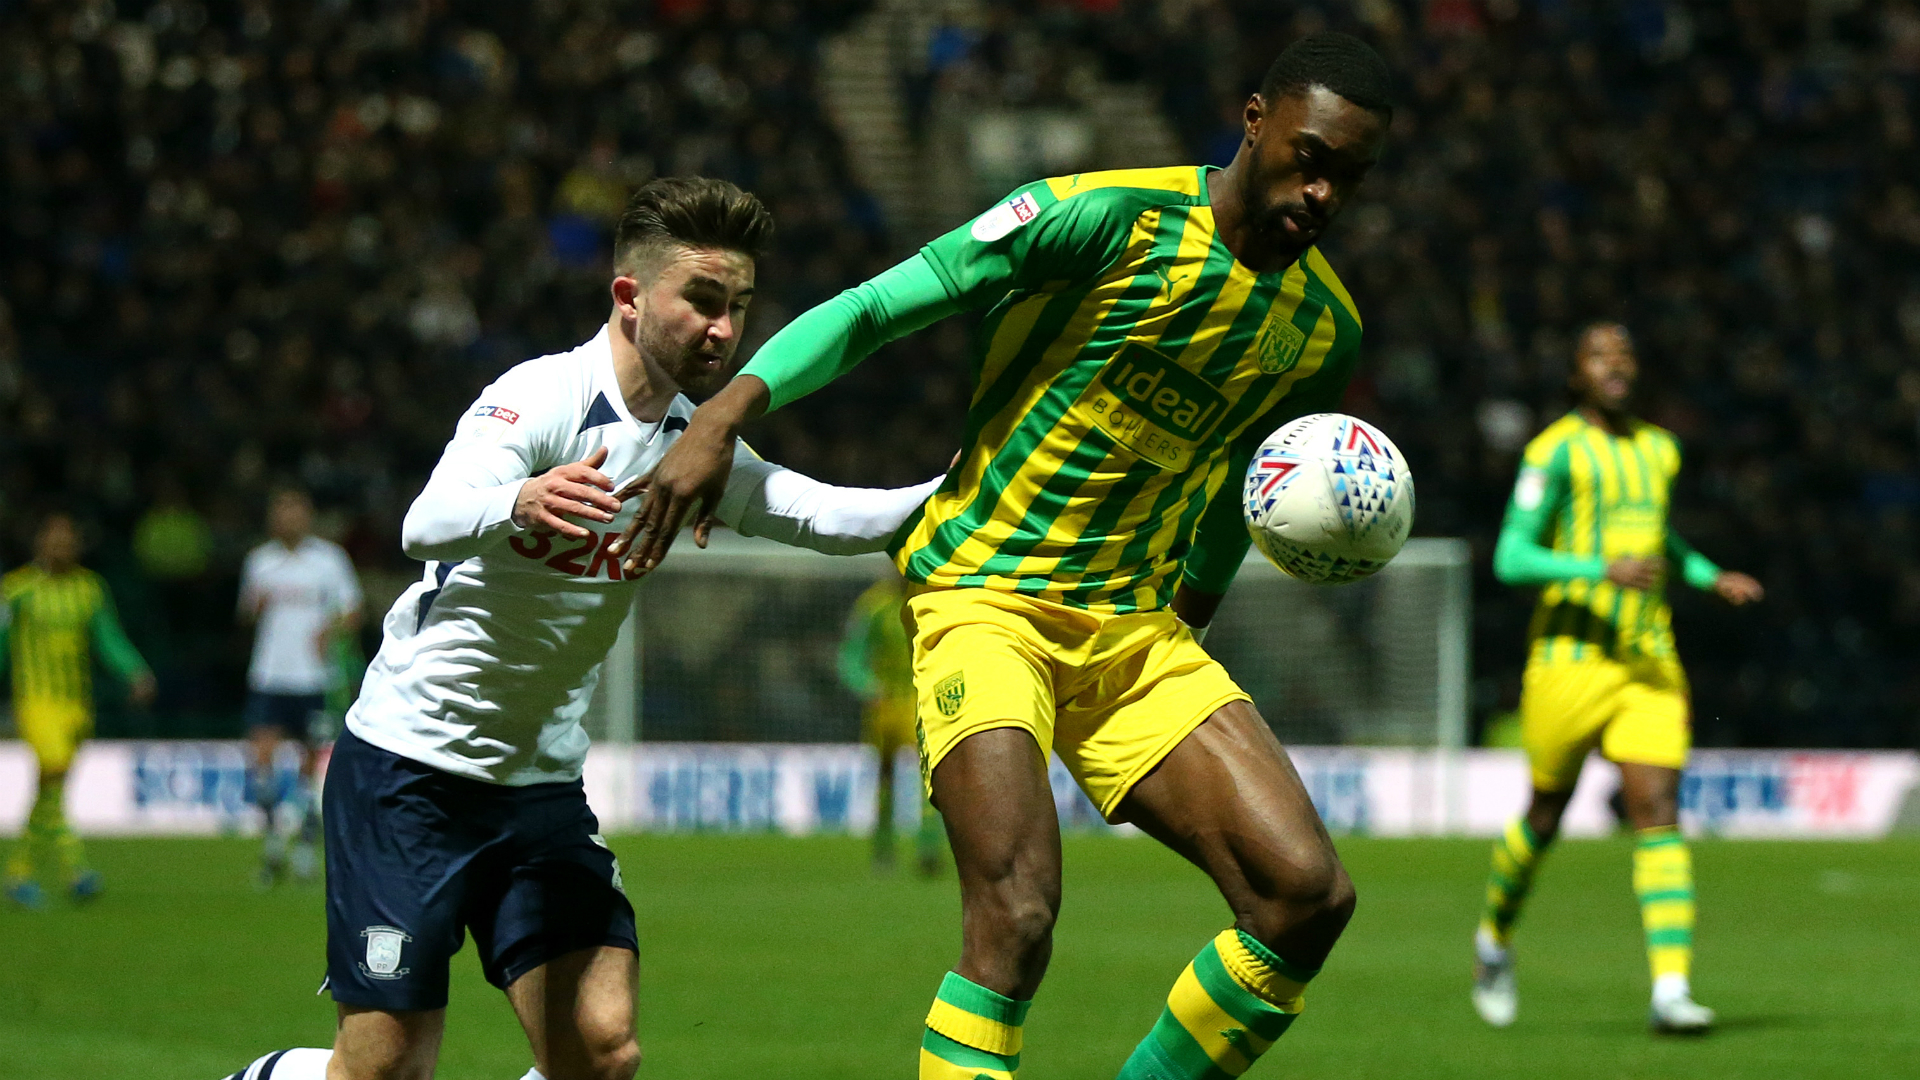 Ajayi: West Bromwich Albion and Super Eagles star sets long-term career targets